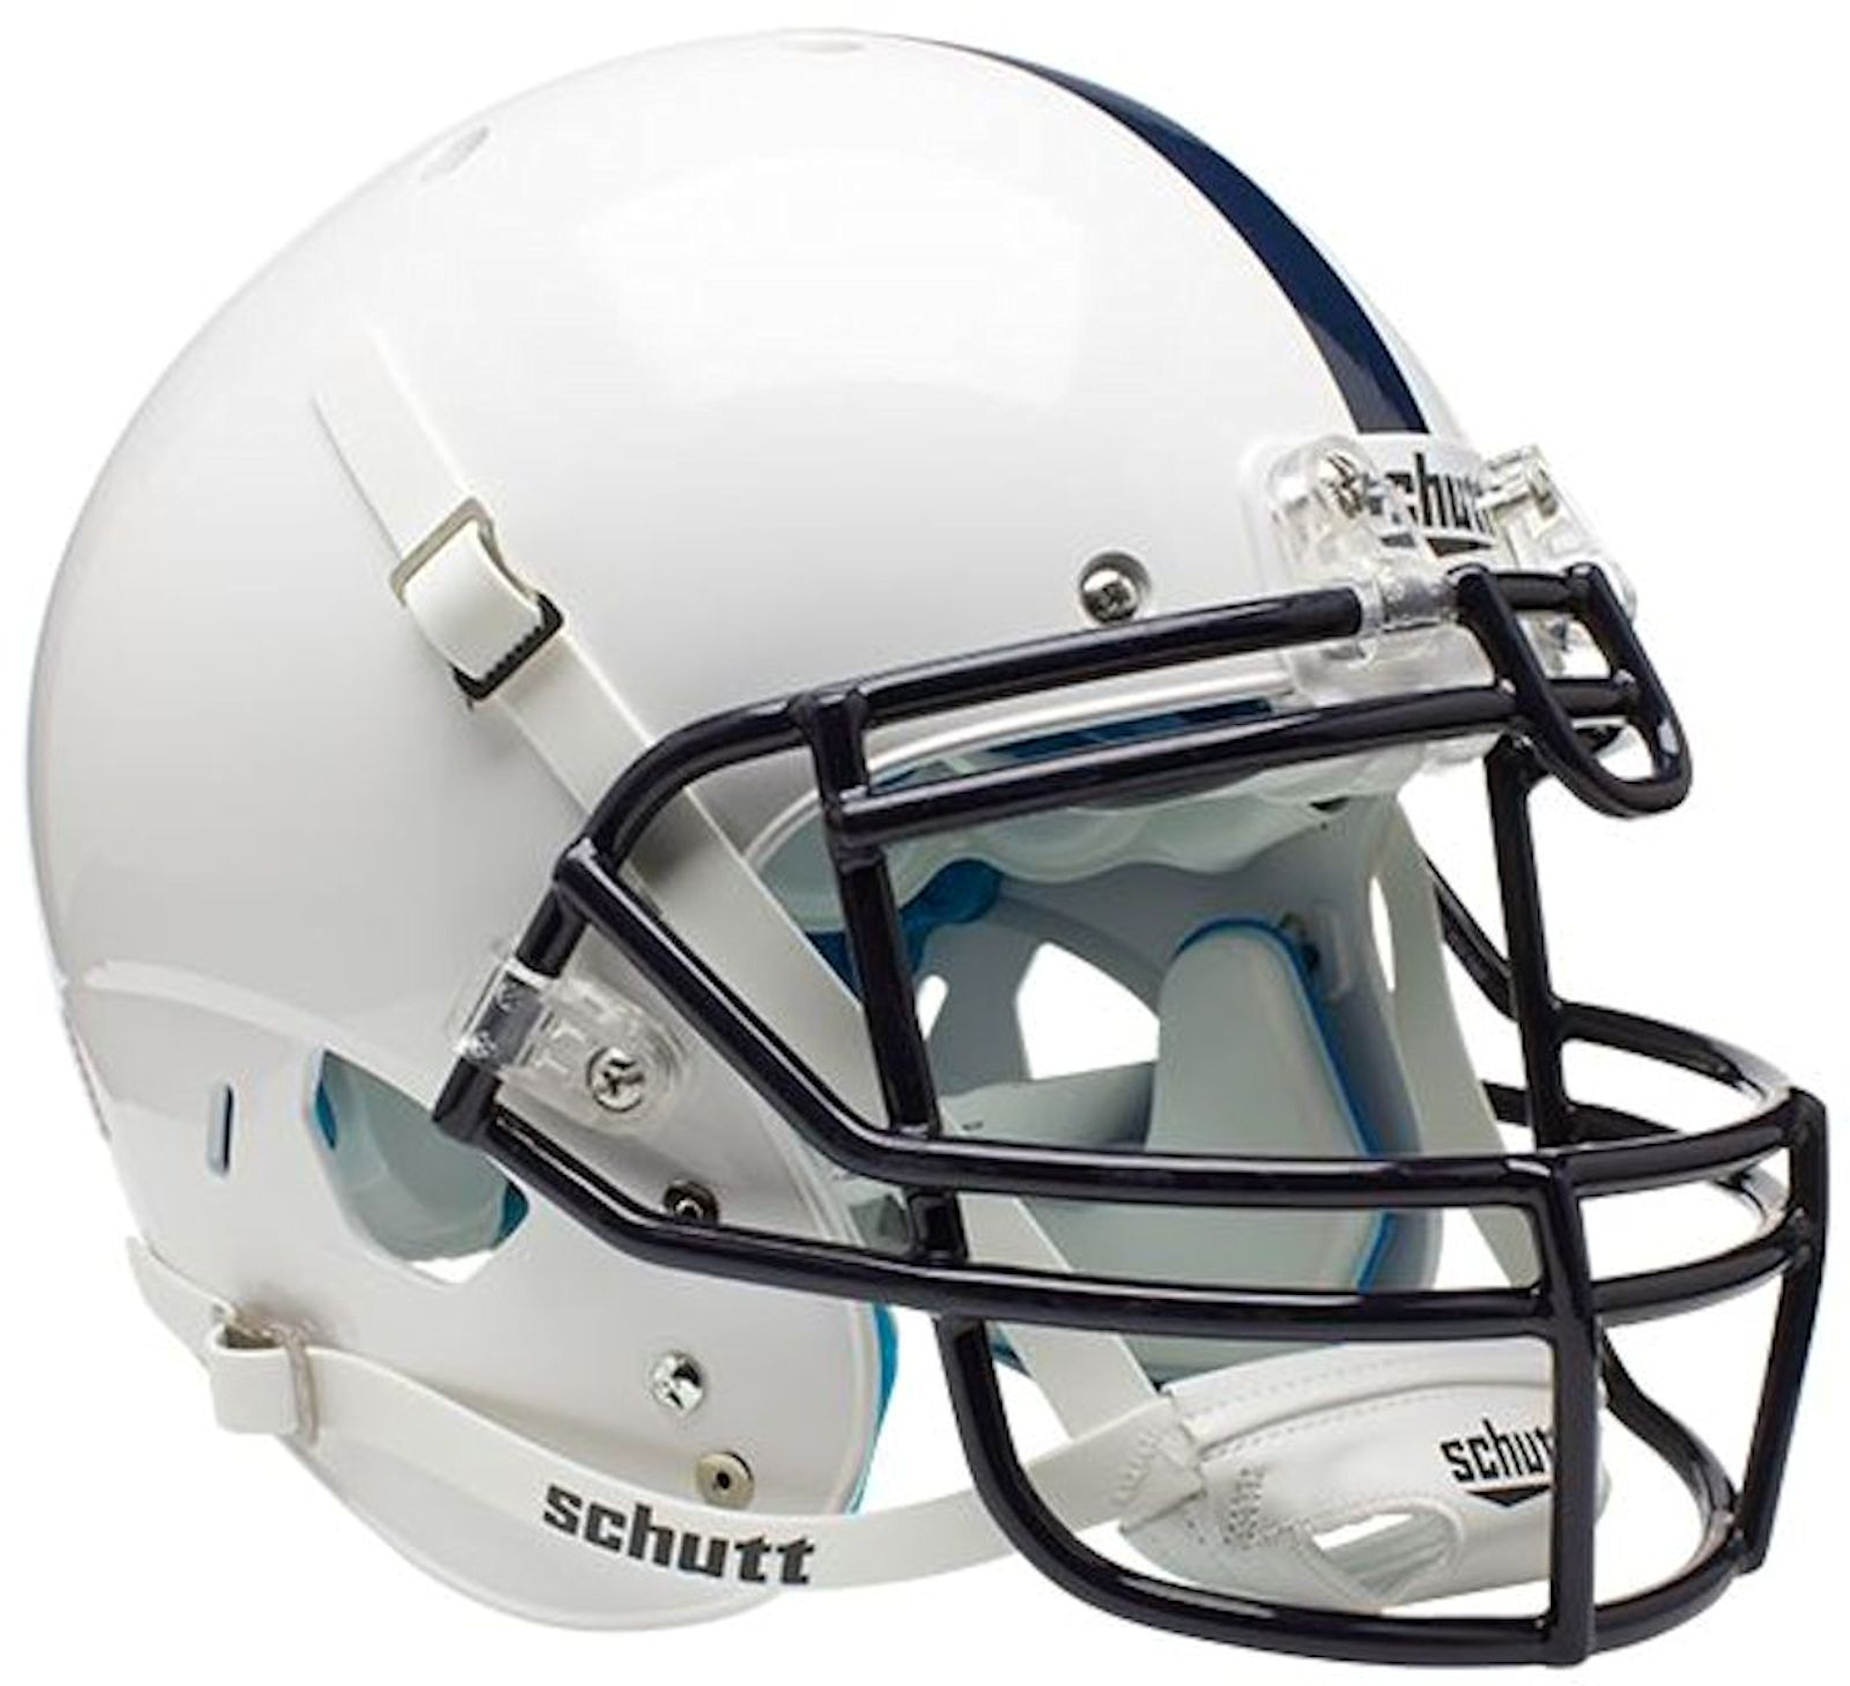 Penn State Nittany Lions Authentic College XP Football Helmet Schutt